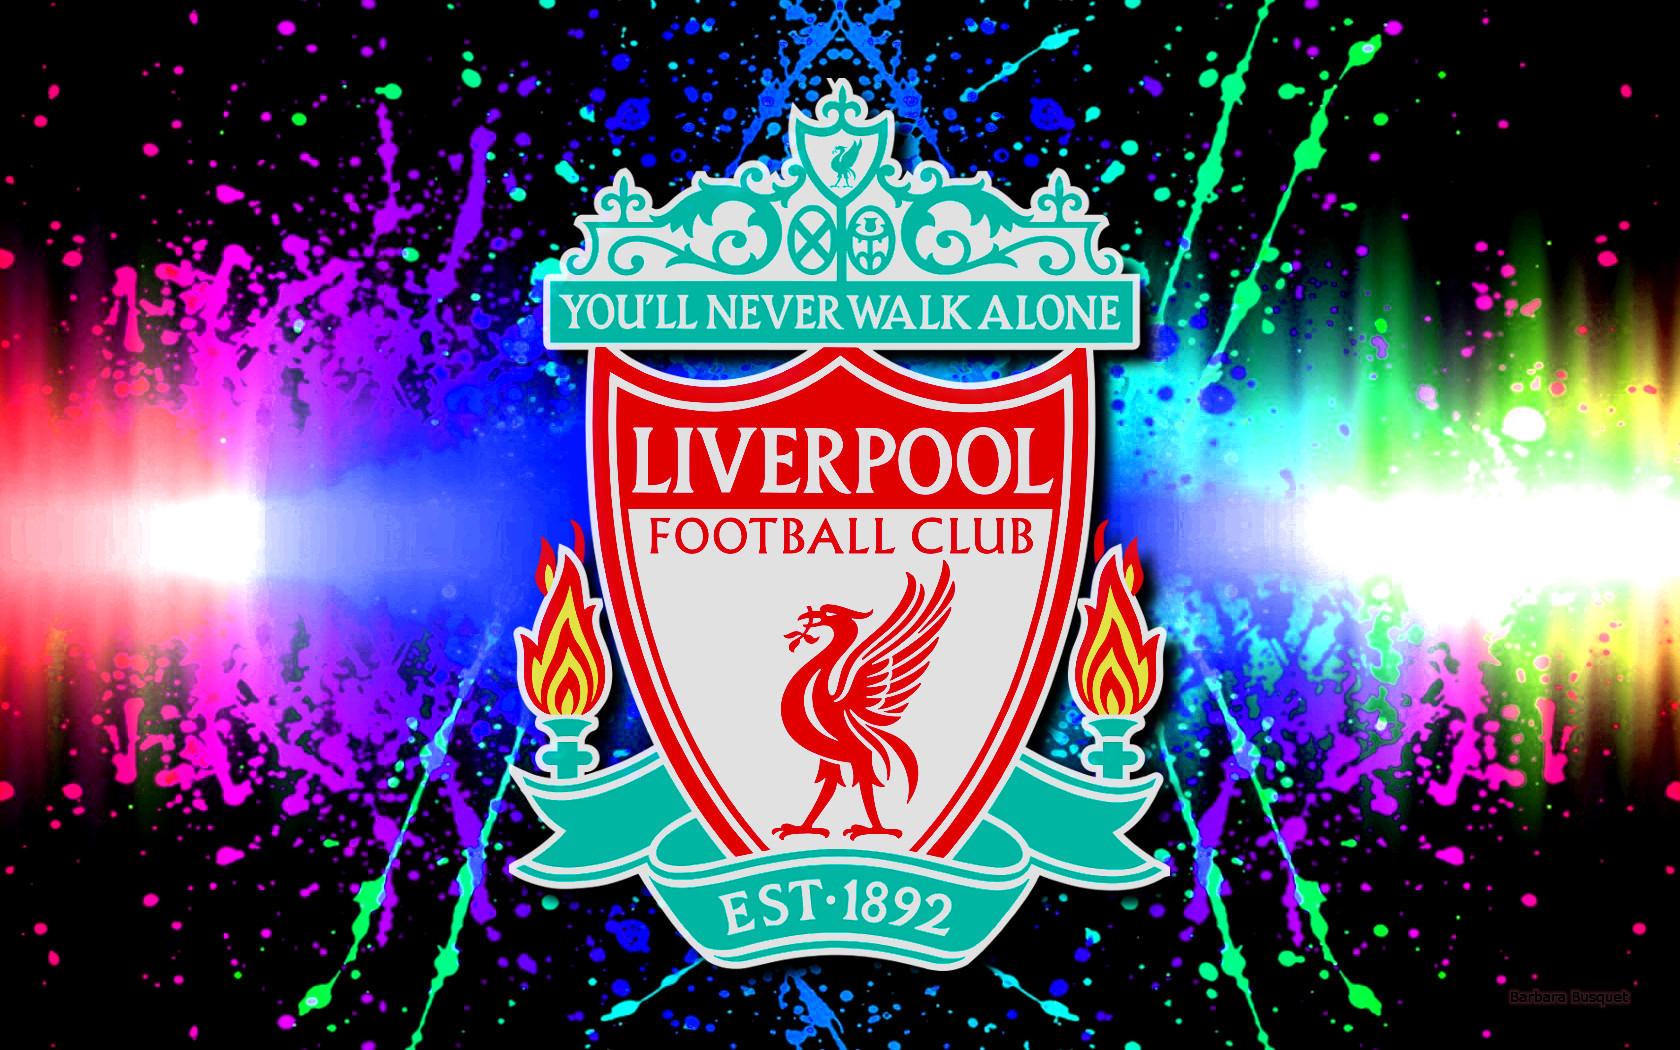 Liverpool Football Club Wallpapers - Barbaras HD Wallpapers